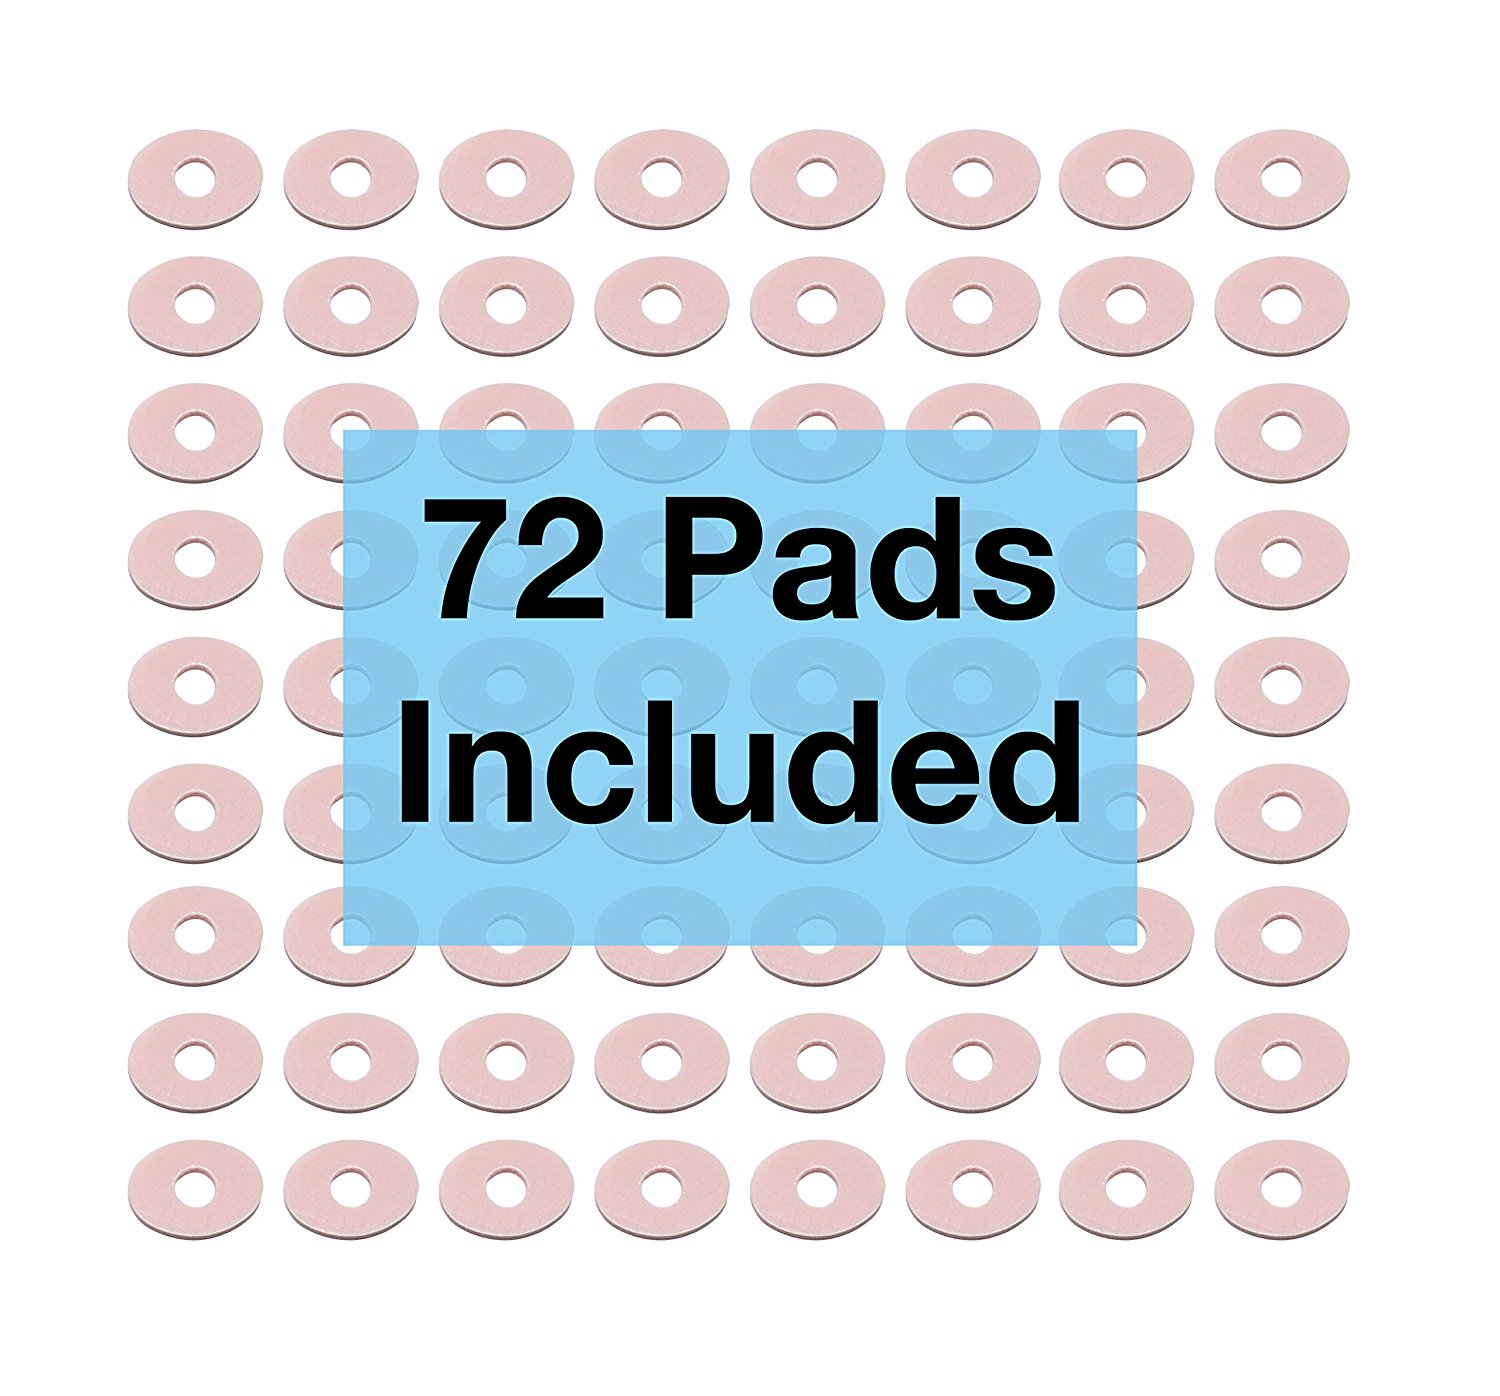 ZenToes Thick Corn Pads Toe Cushions - Hypoallergenic and Waterproof - Multi-Pack